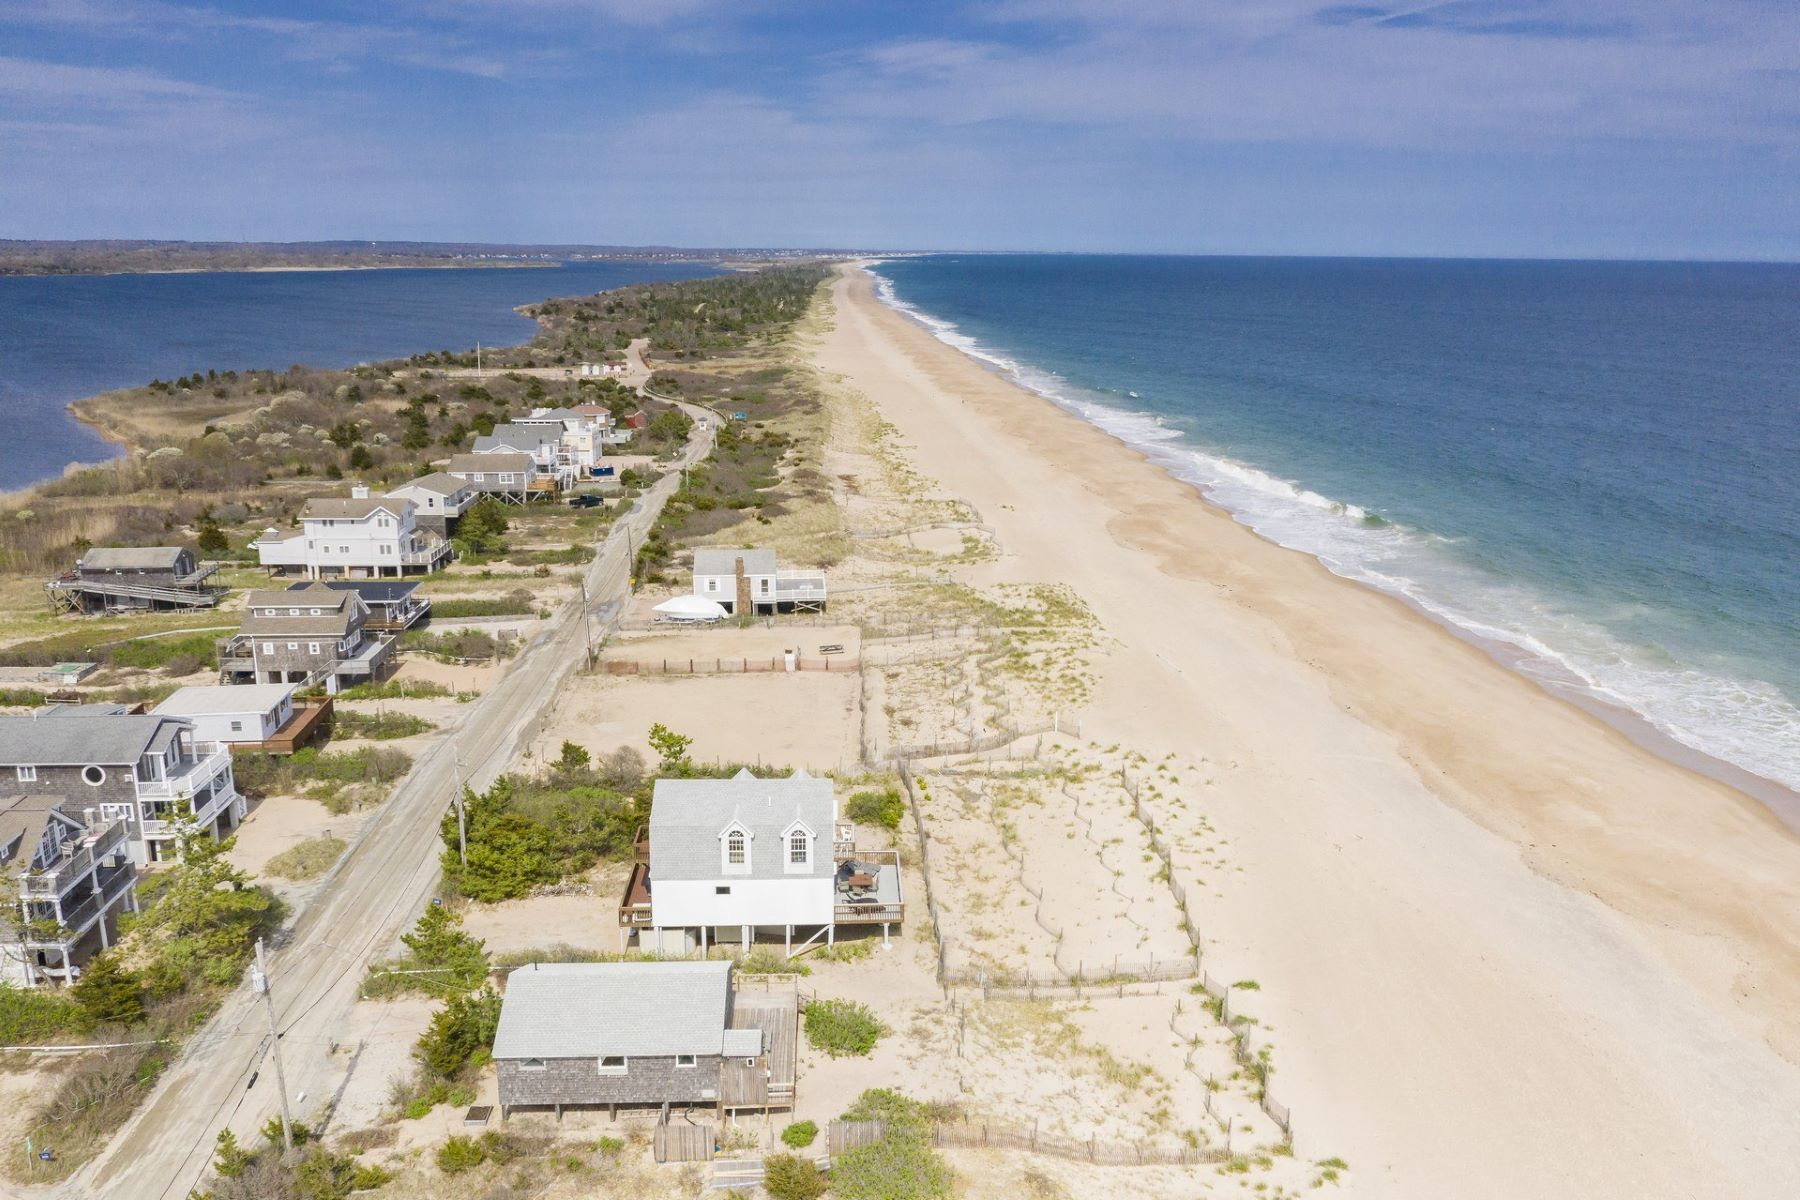 Single Family Homes for Sale at 491 East Beach Road, Charlestown, RI 491 East Beach Road Charlestown, Rhode Island 02813 United States